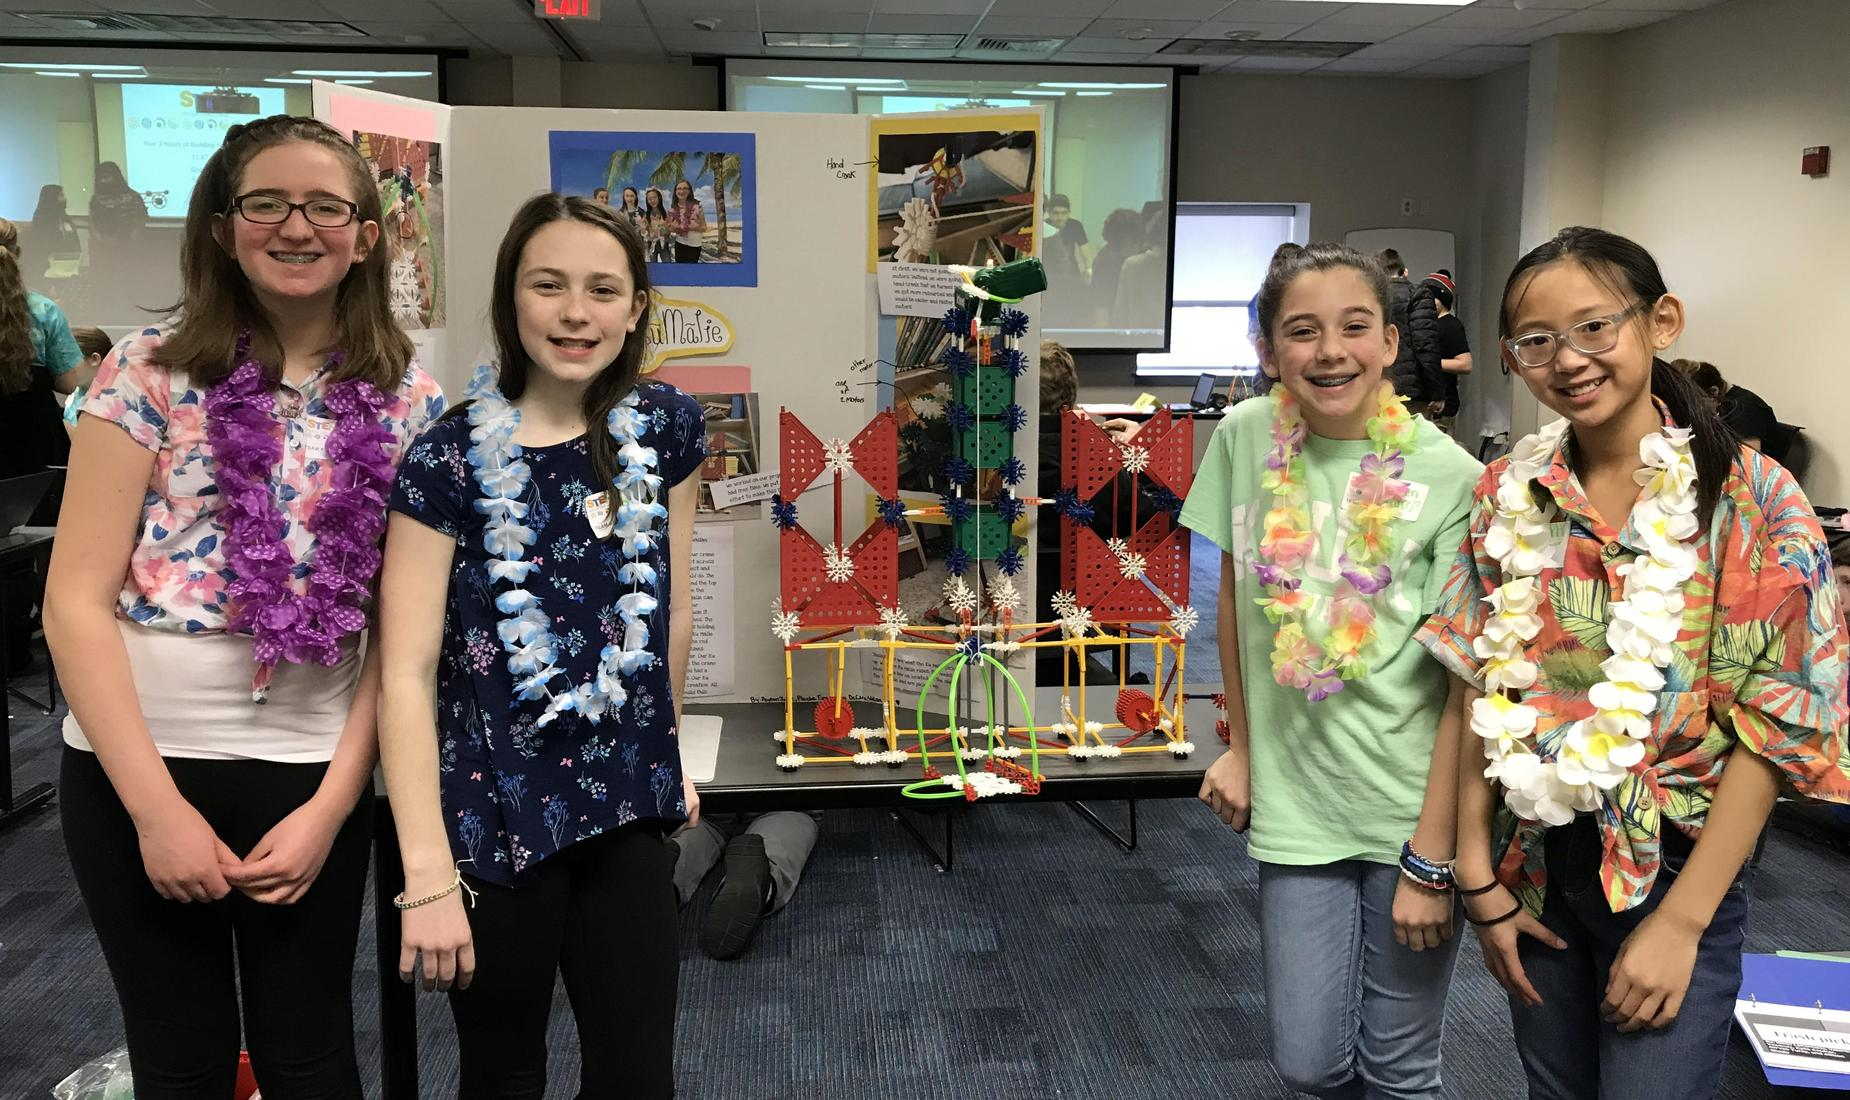 4 girls in colorful shirts with lays hanging on their neck showing their project from the K'Nex Challenge